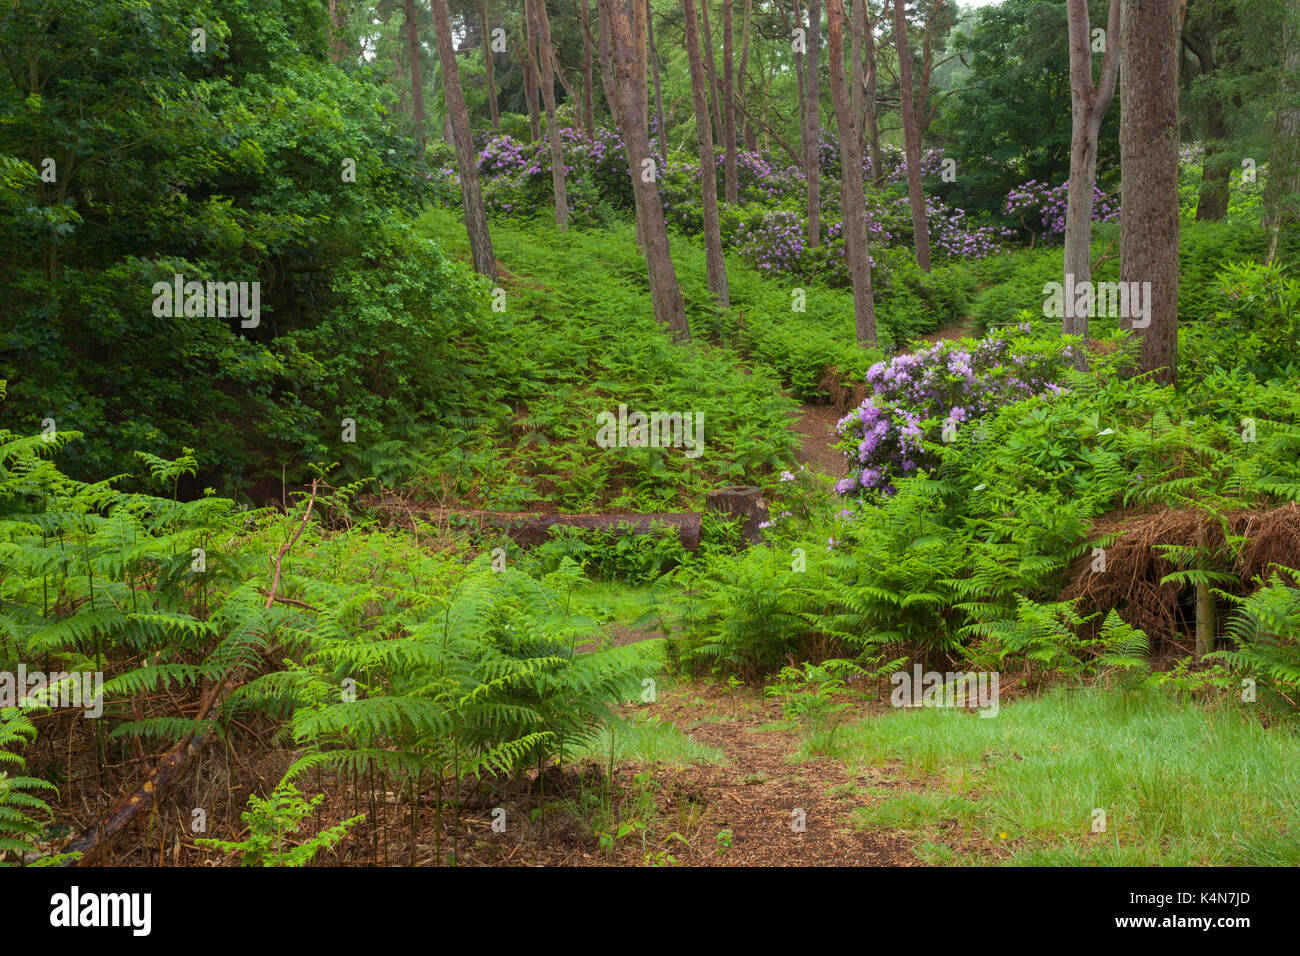 Rhododendrons growing among the pine trees that make up part of the varied heathland landscape of Dersingham Bog Stock Photo